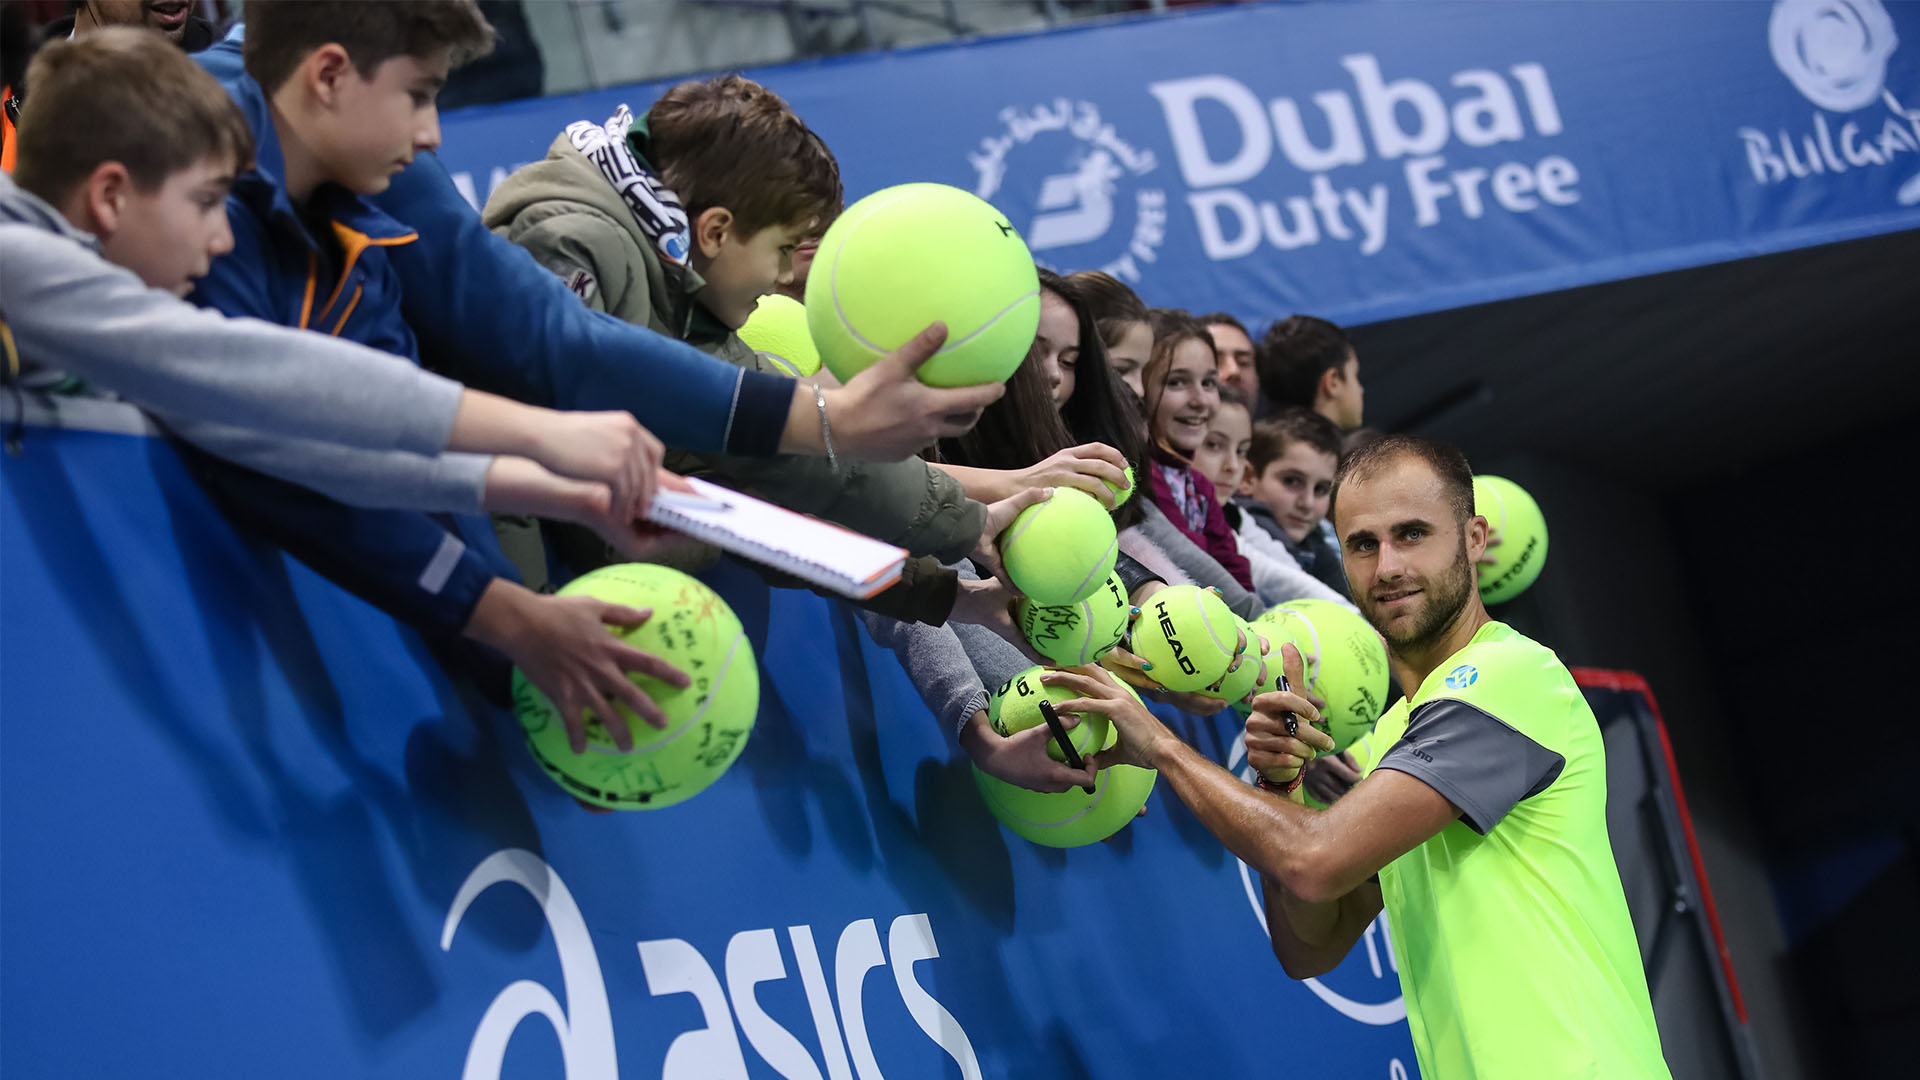 Marius Copil after the victory against Gilles Muller